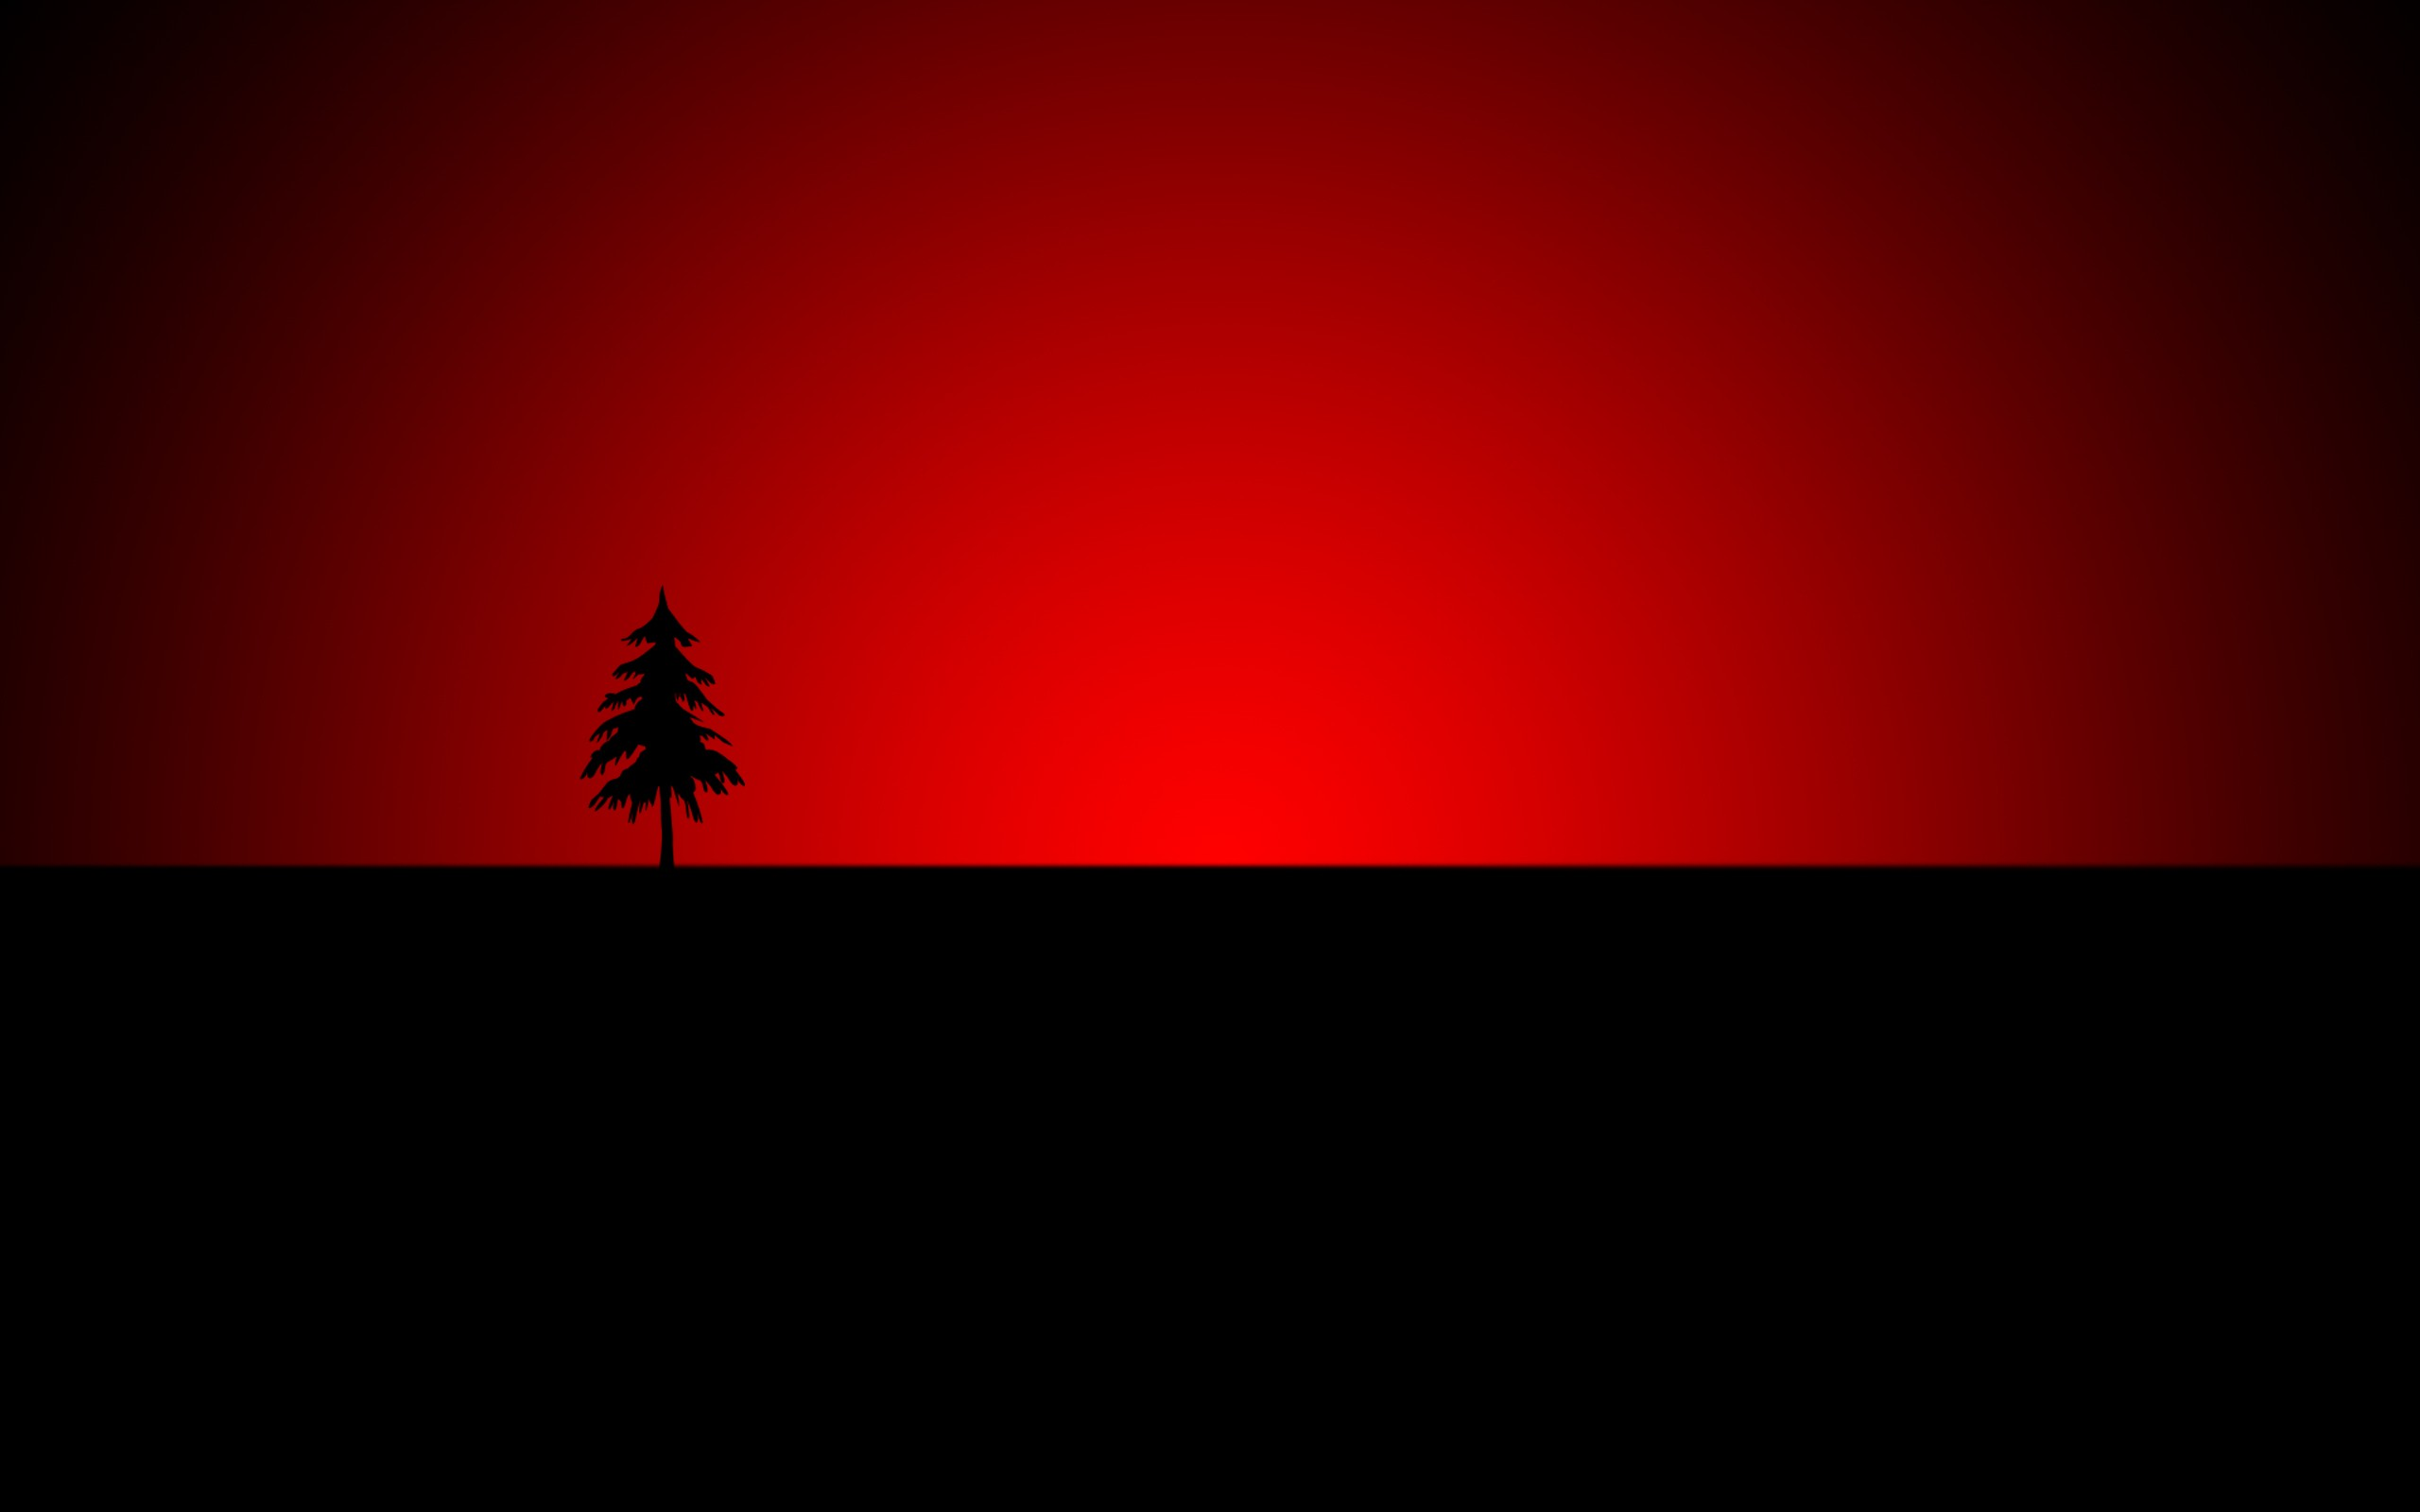 Red Wallpaper Hd Download Free Backgrounds For Desktop And